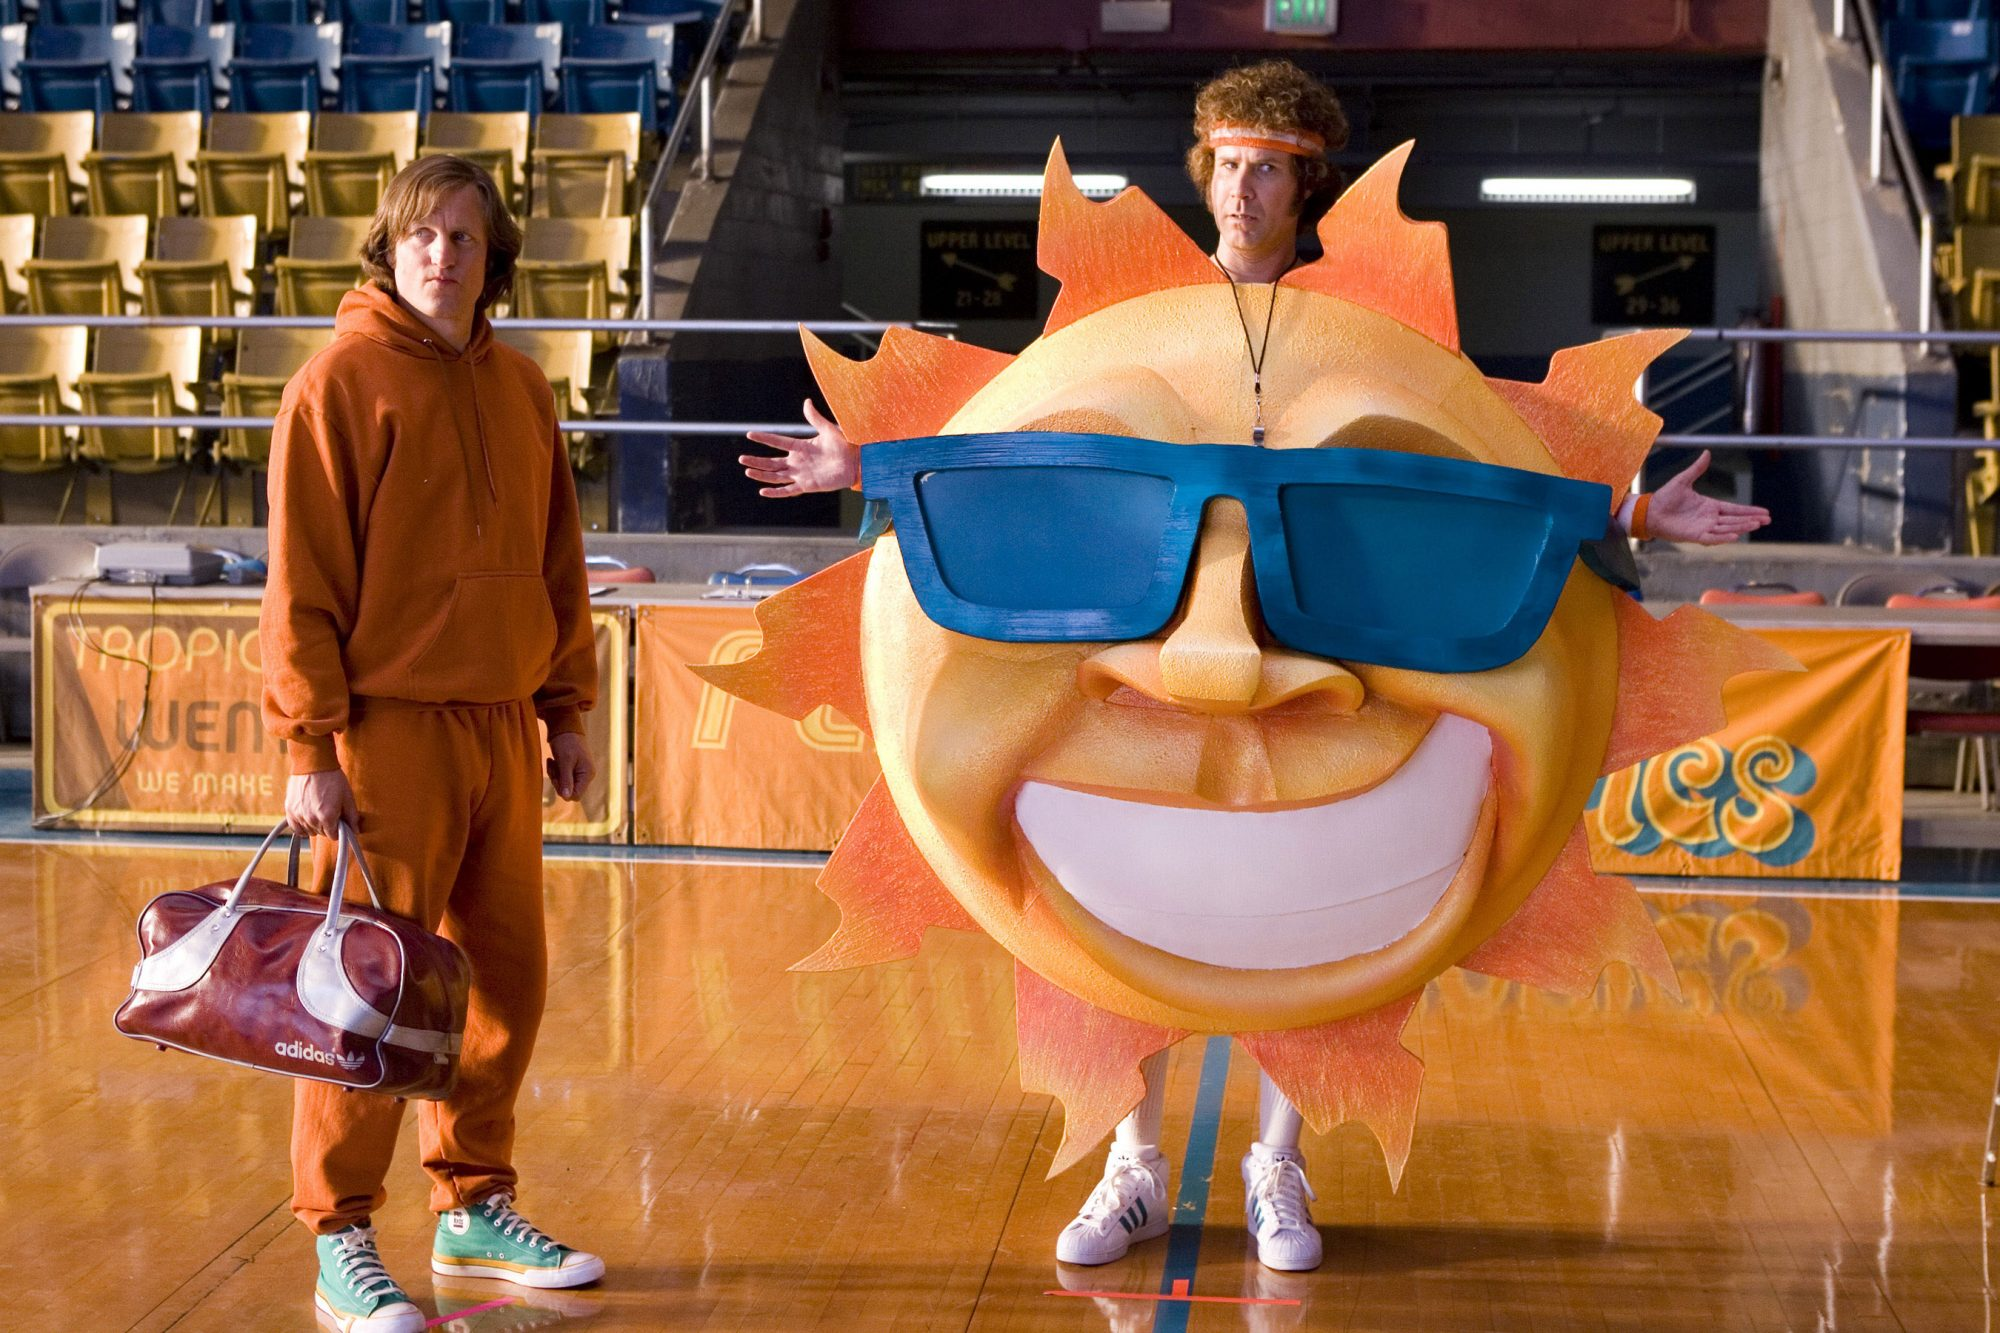 15. Will Ferrell and Woody Harrelson in Semi-Pro (2008)